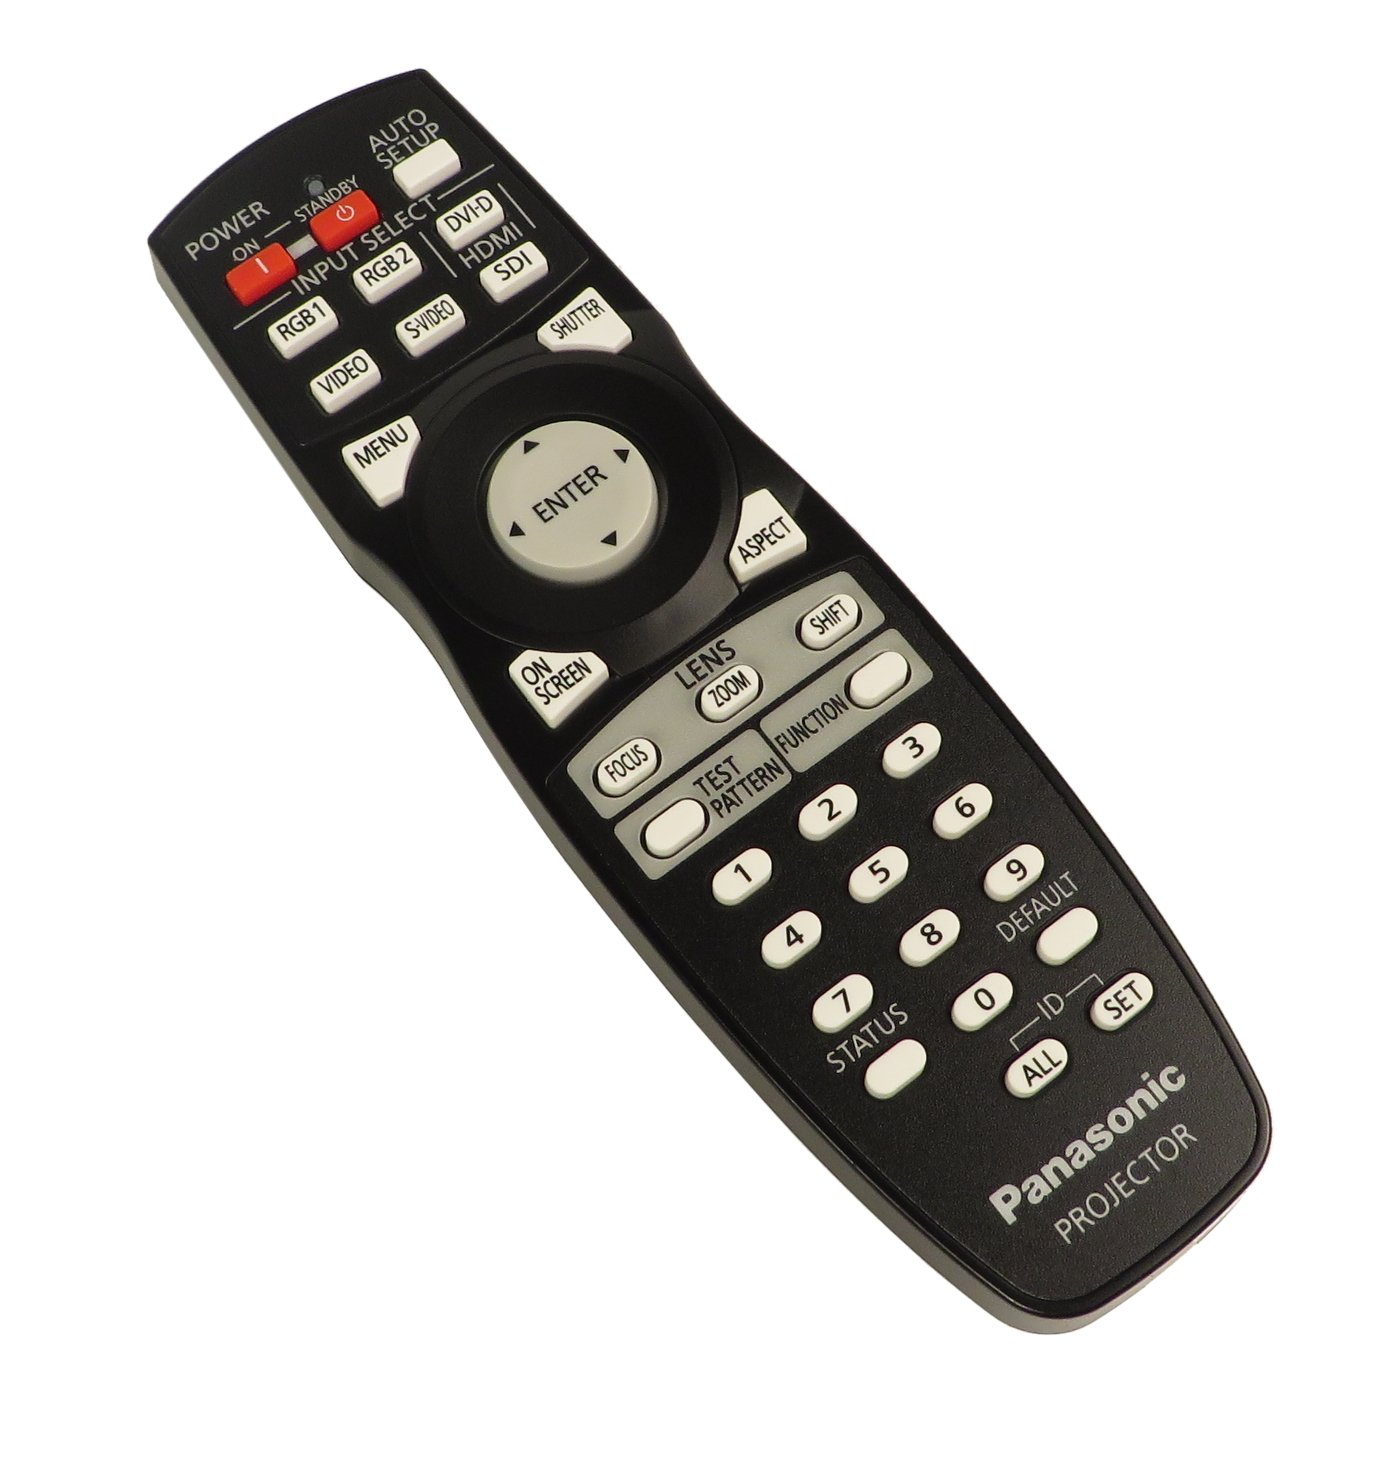 Remote for PT-DZ8700